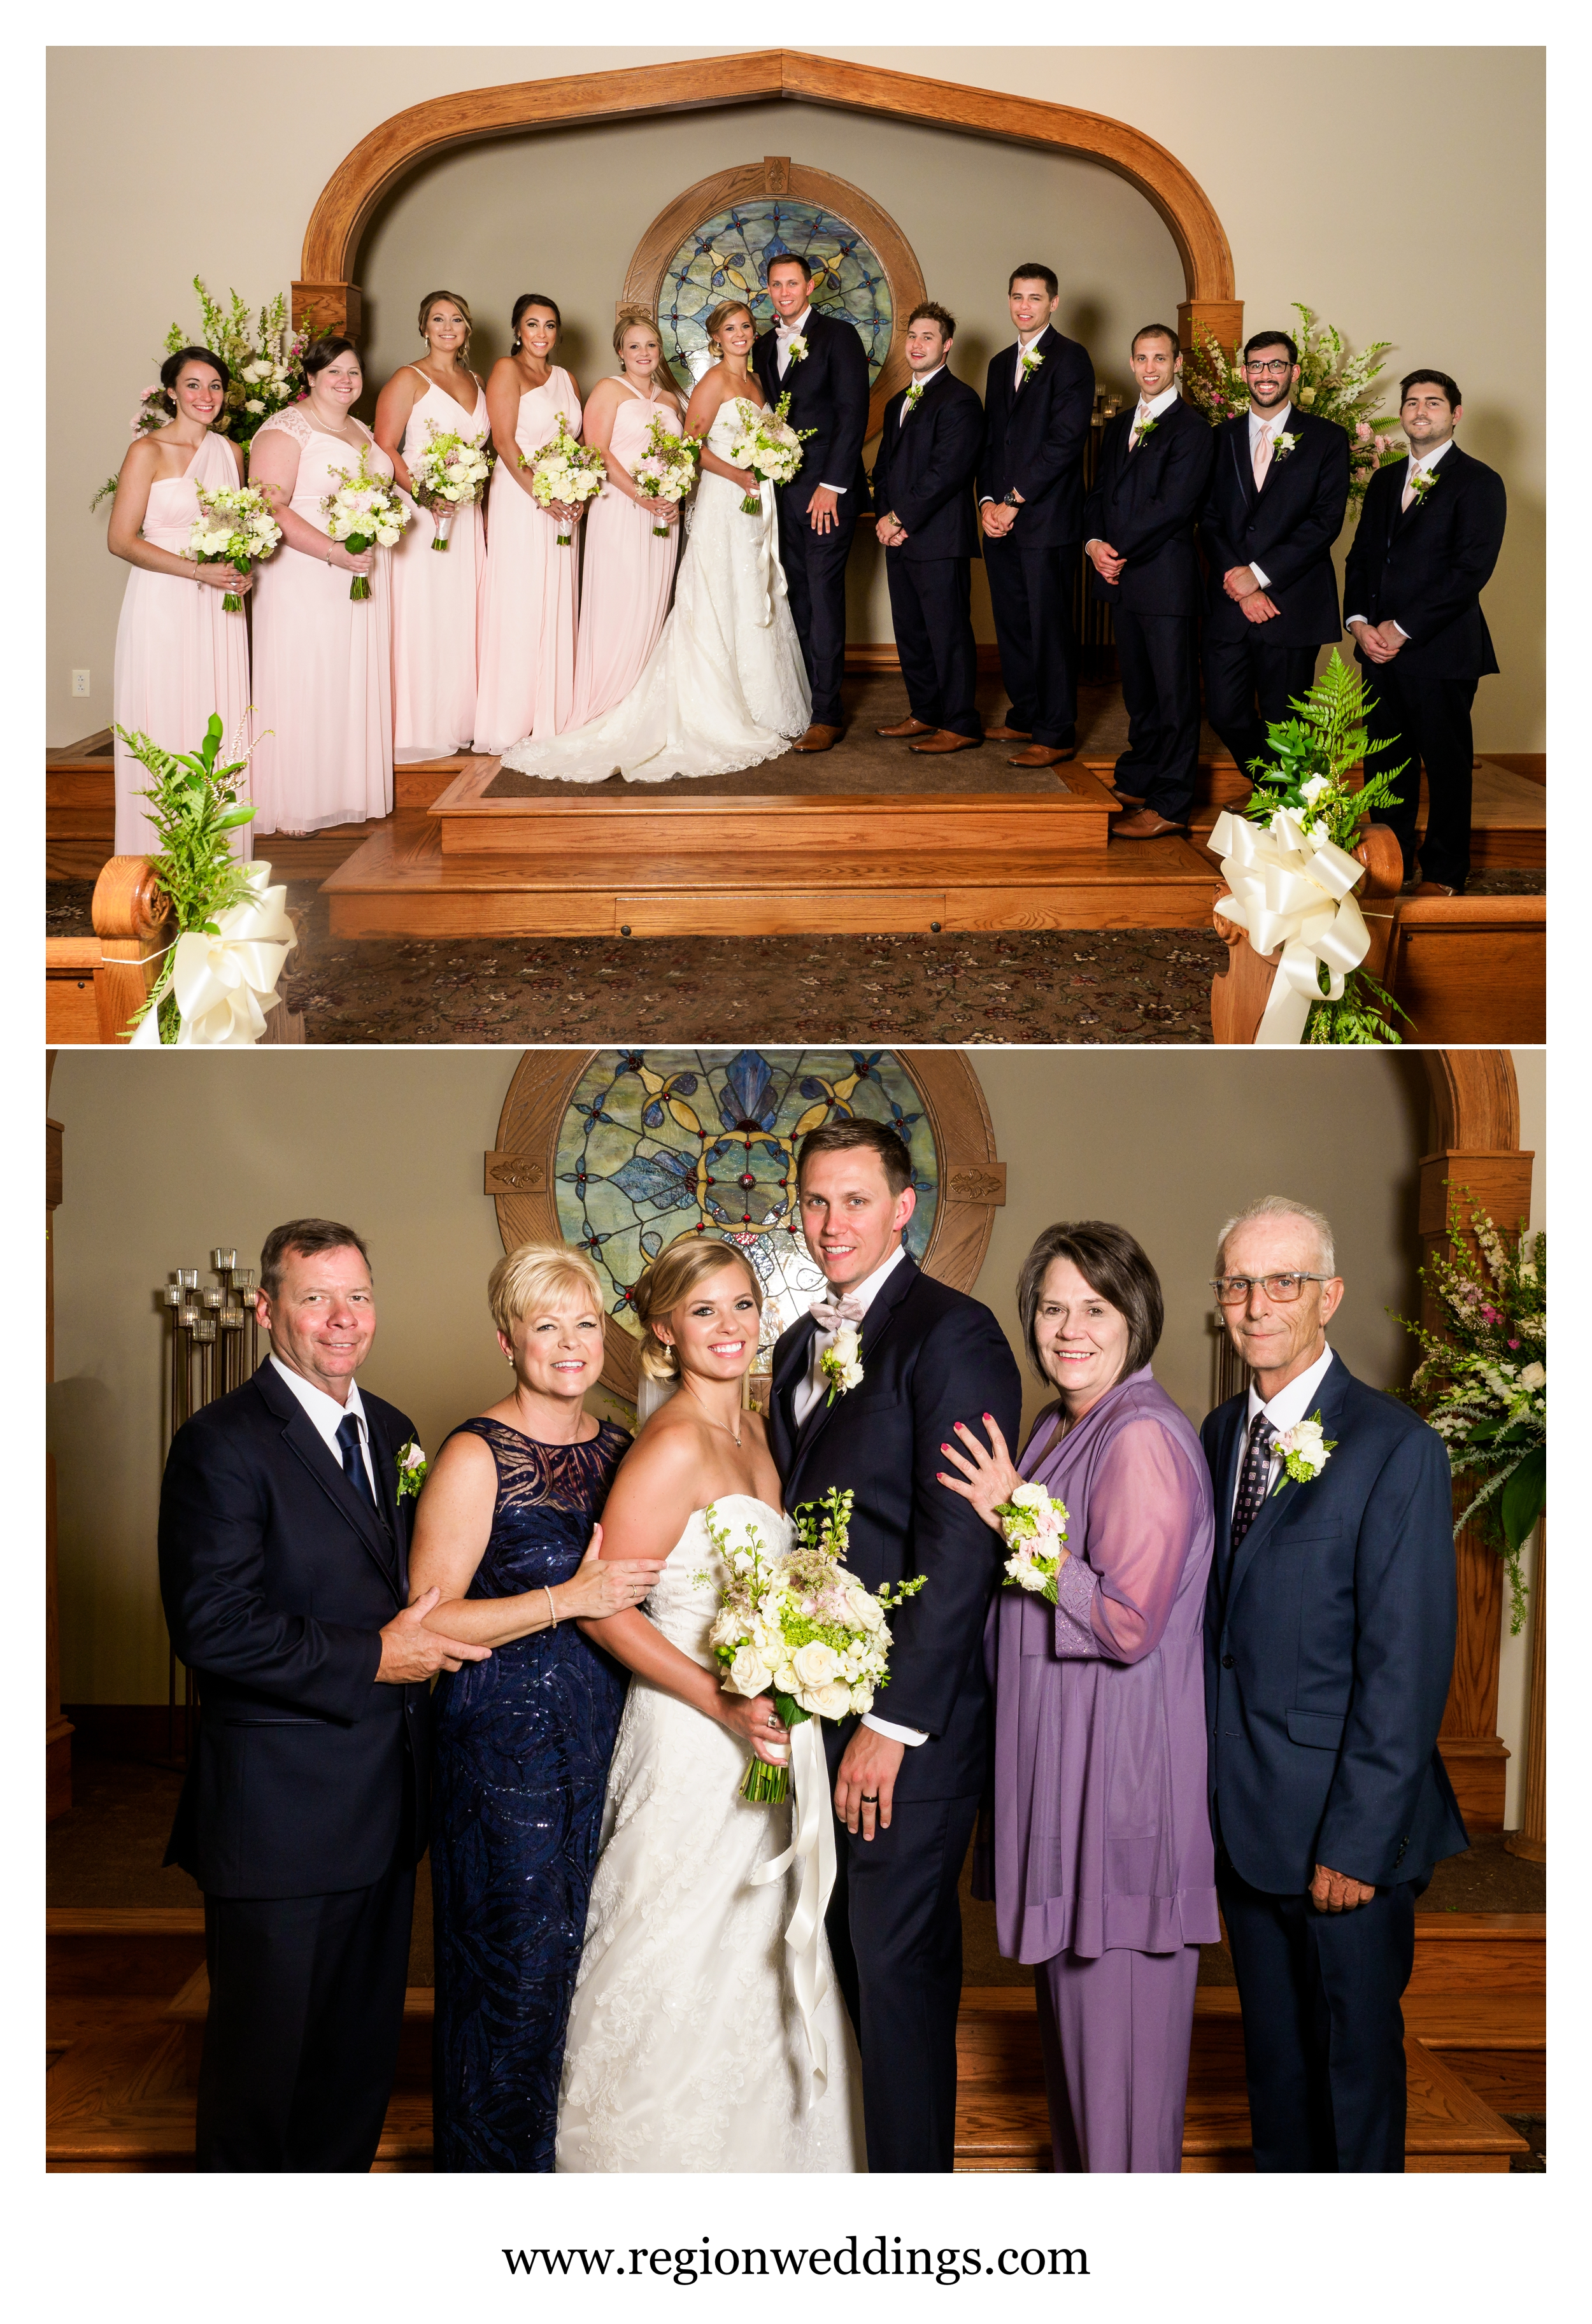 Family and wedding party portraits inside the Aberdeen Chapel.